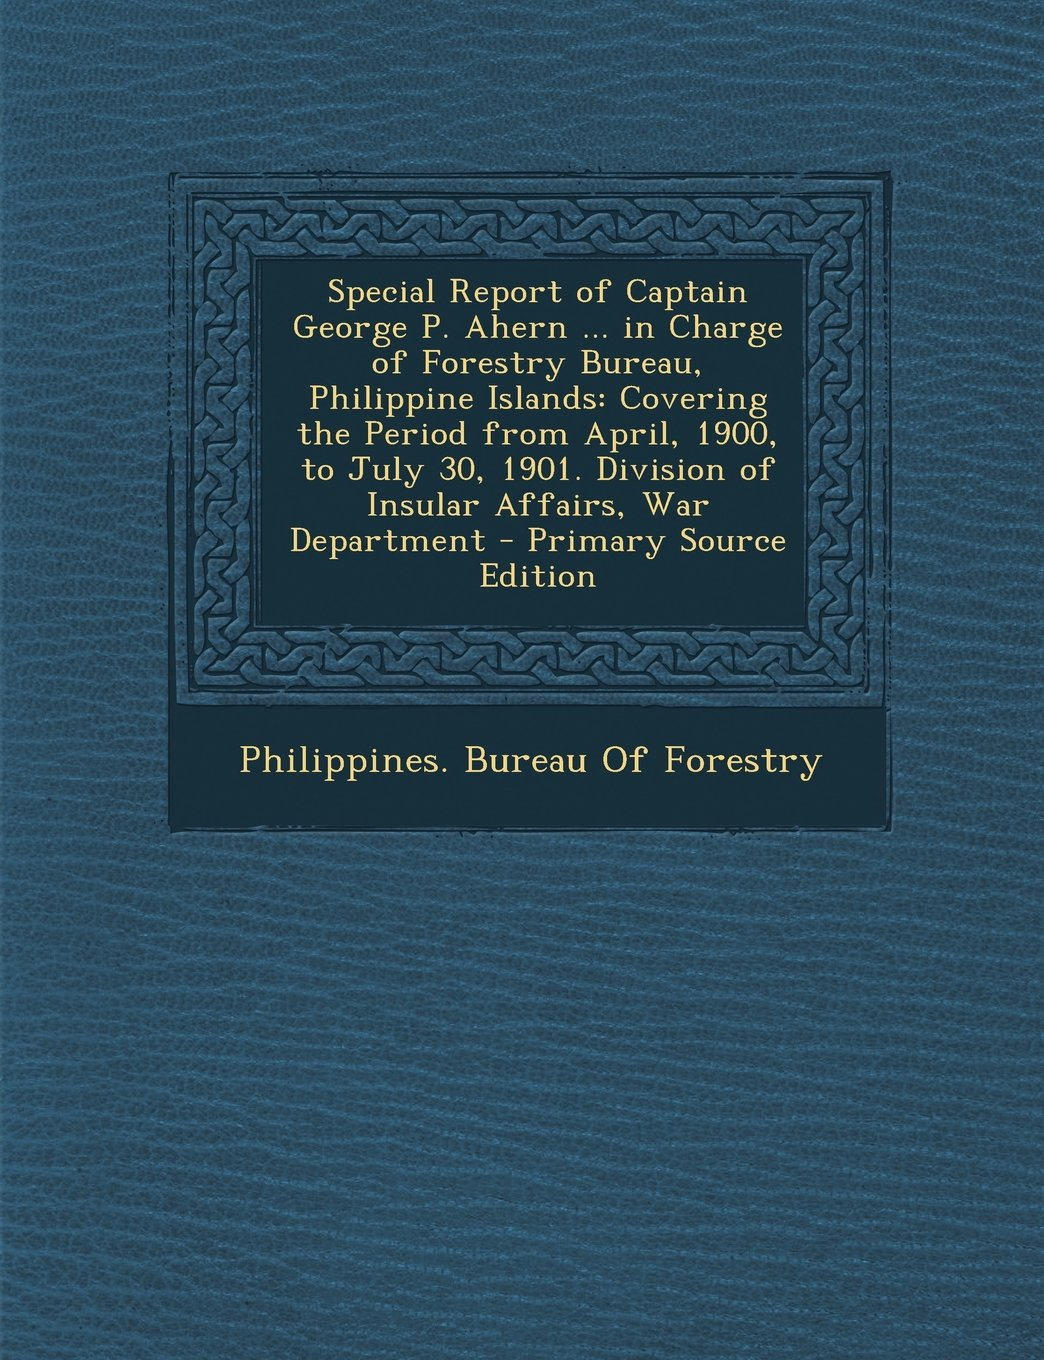 Read Online Special Report of Captain George P. Ahern ... in Charge of Forestry Bureau, Philippine Islands: Covering the Period from April, 1900, to July 30, ... War Department - Primary Source Edition pdf